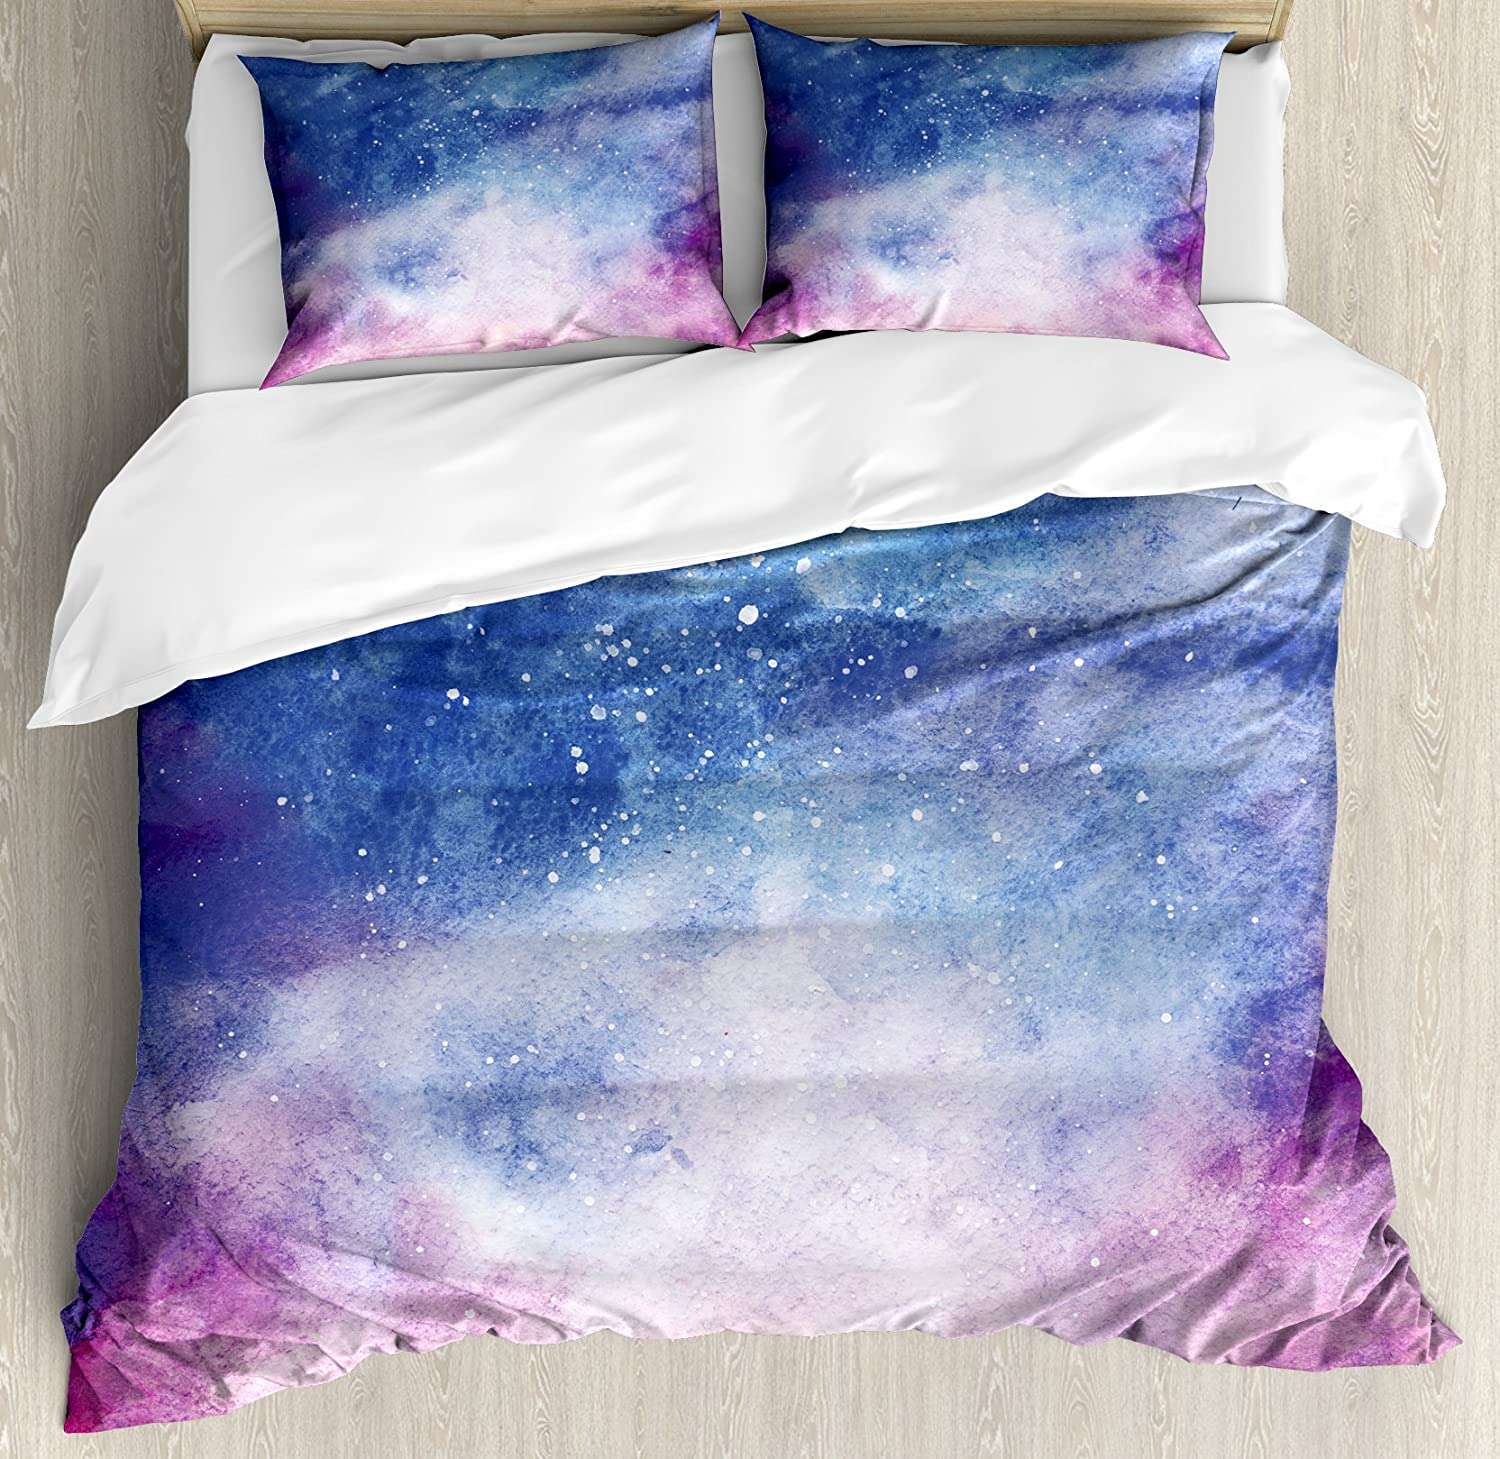 Ambesonne Navy and Blush Duvet Cover Set, Watercolor Style Starry Space Galaxy Nebula Abstract Cosmos Inspired, Decorative 3 Piece Bedding Set with 2 Pillow Shams, Queen Size, Salmon Pink